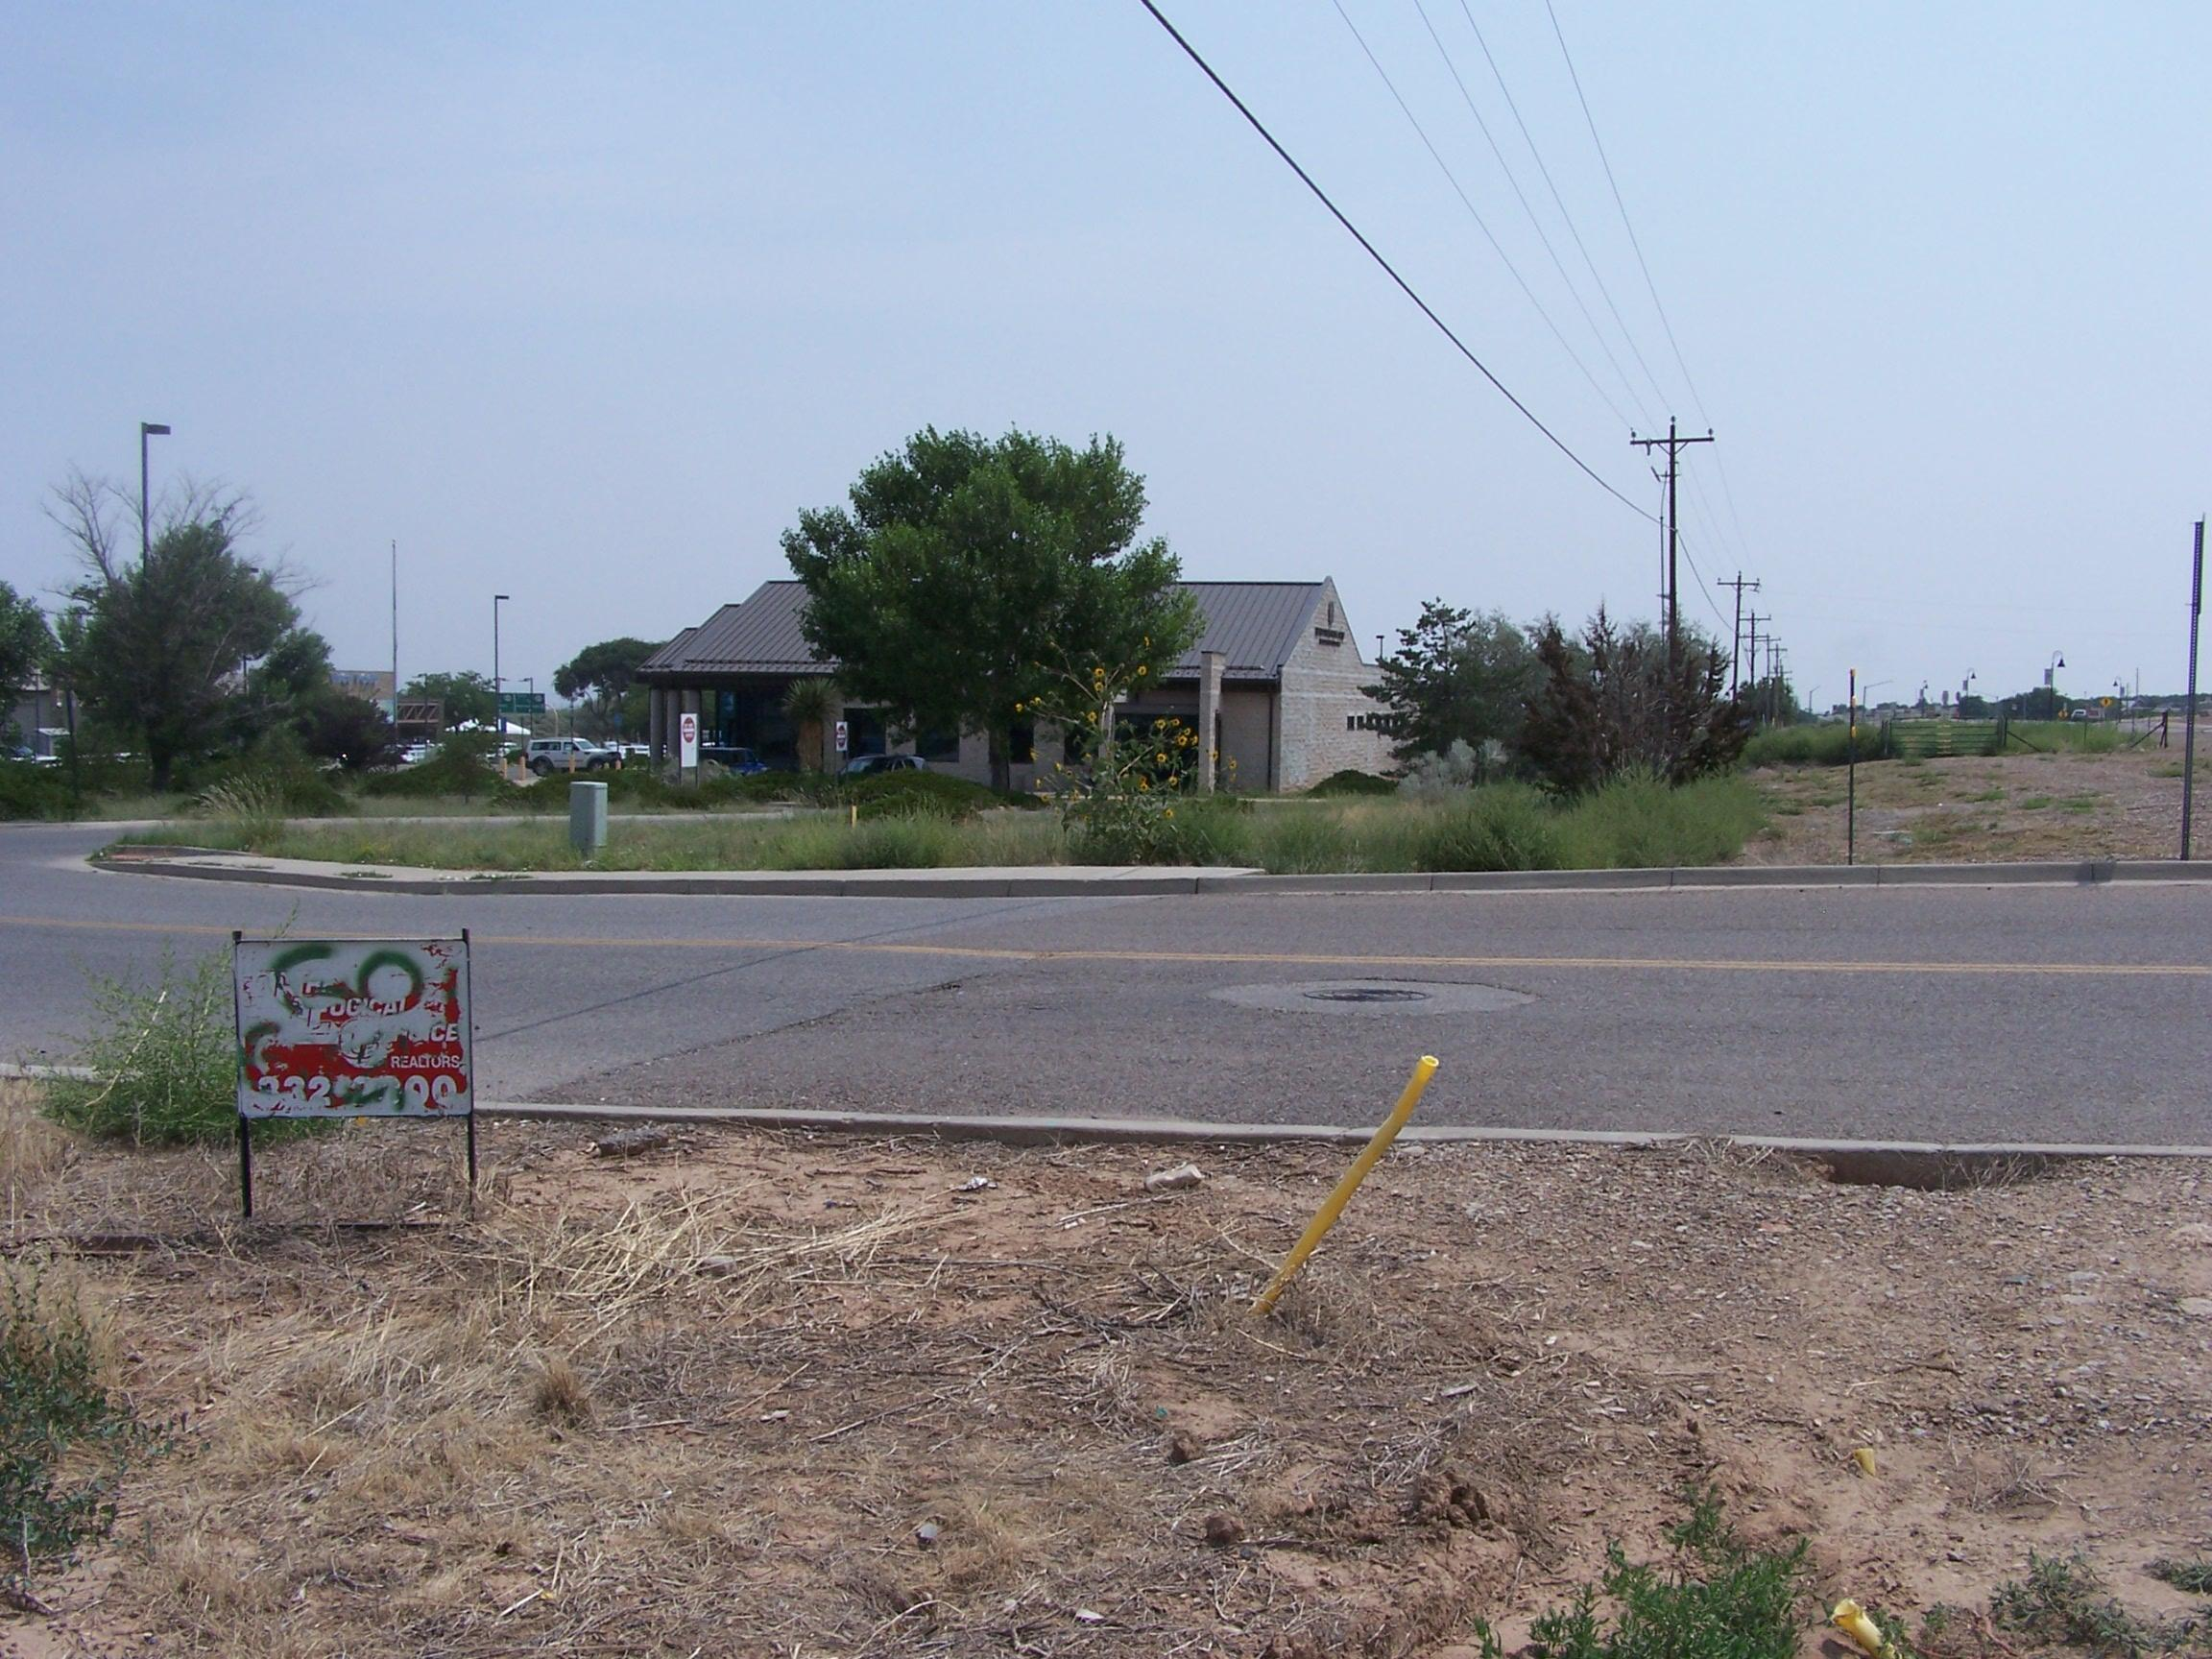 5 PLAZA COURT, Edgewood, New Mexico 87015, ,Lots And Land,For Sale,5 PLAZA COURT,975842